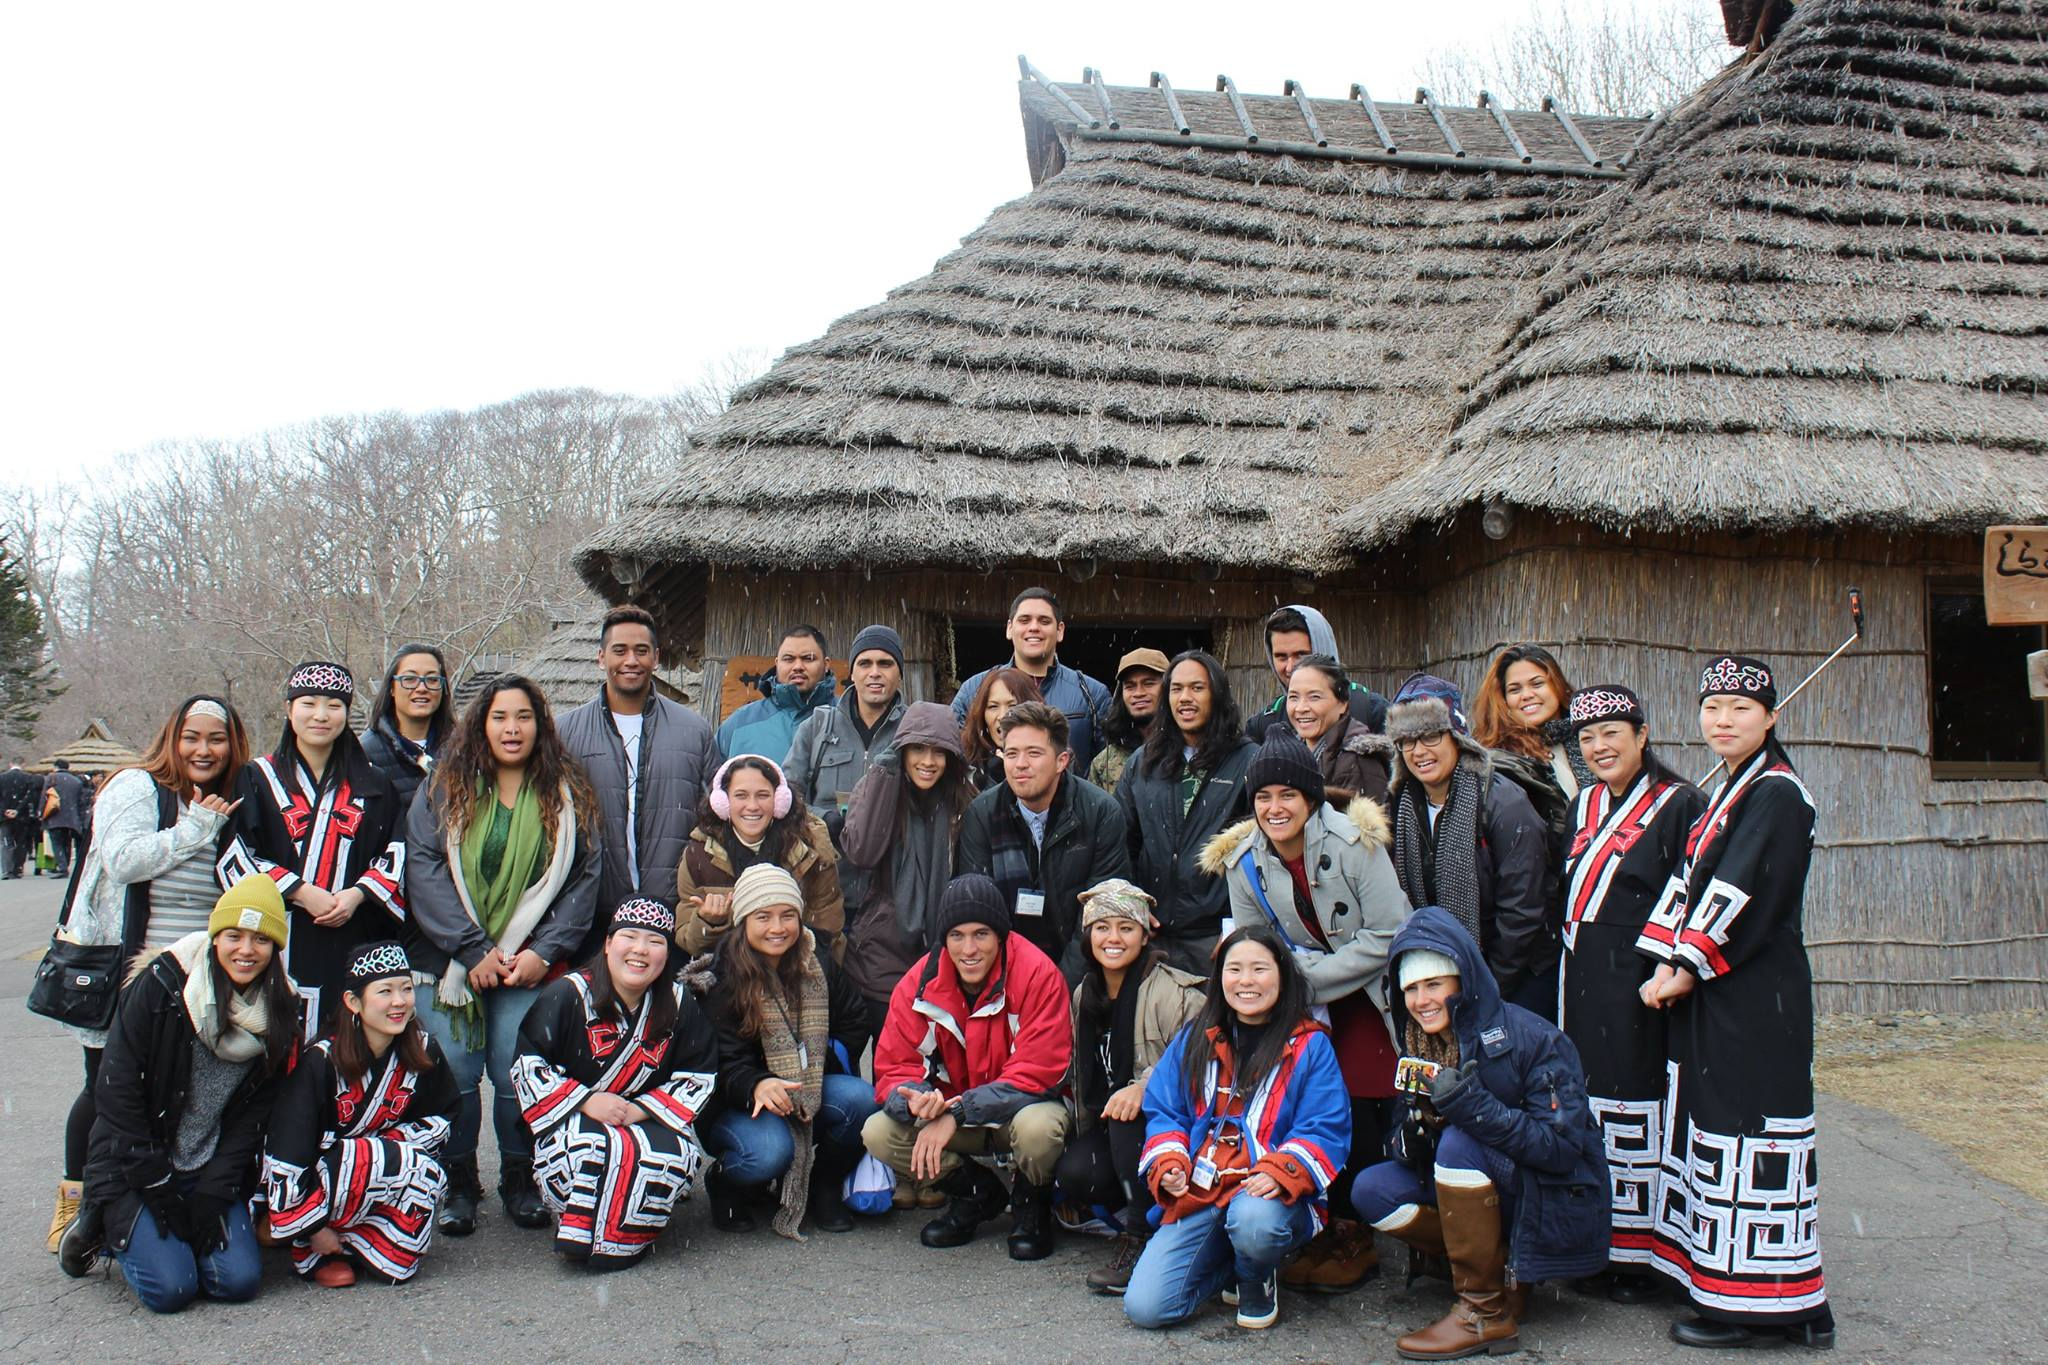 Tomodachi Scholars gathered for group photo in front of indigenous structure.